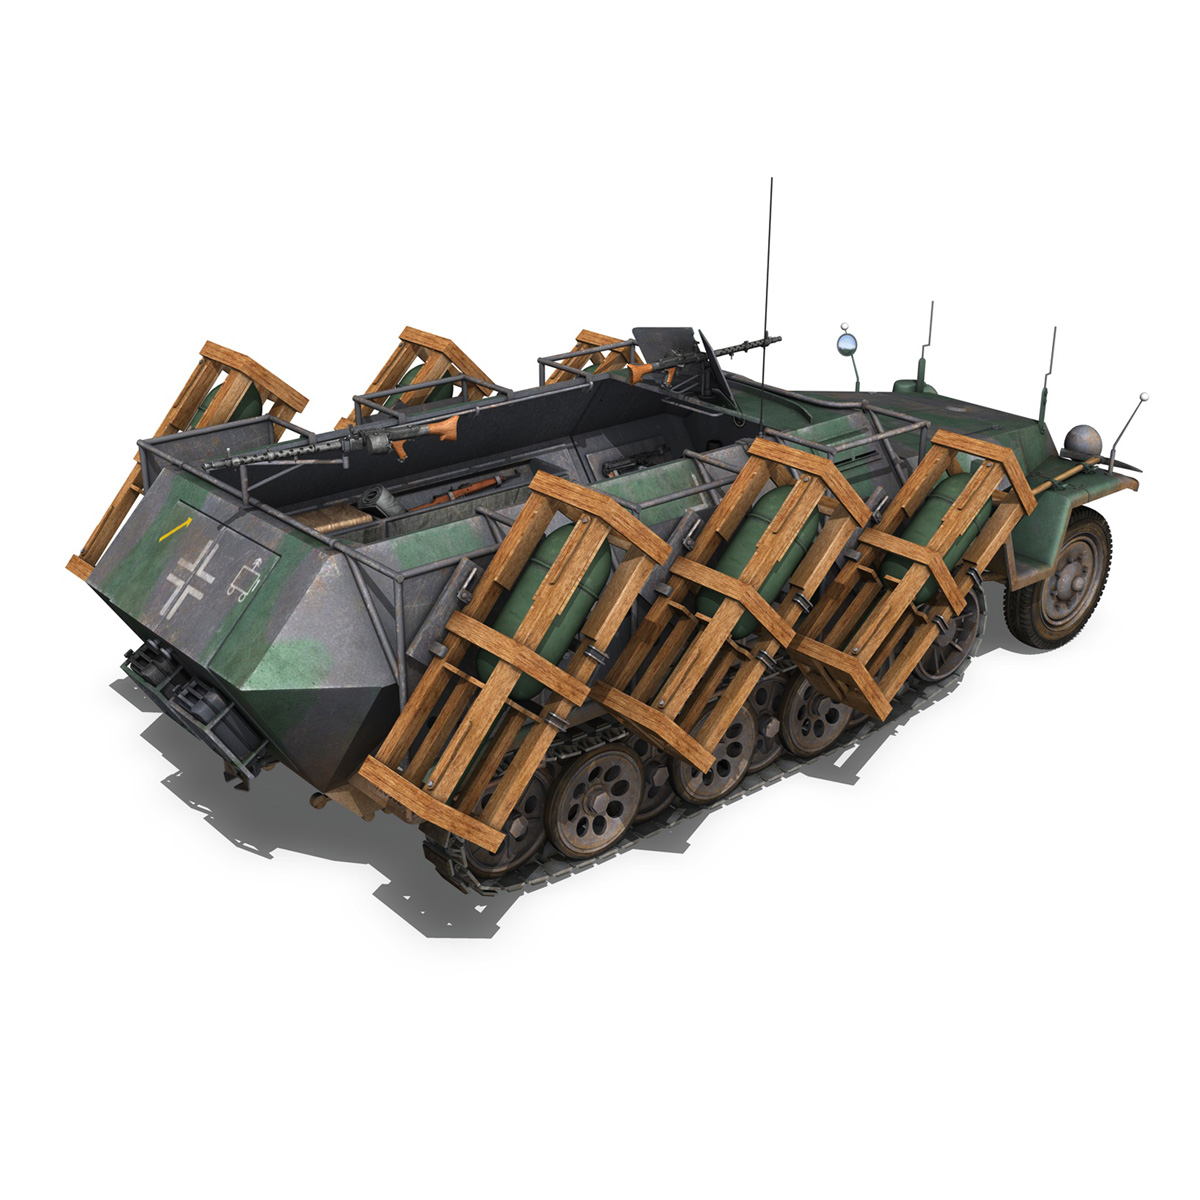 sd.kfz 251/1 ausf.c – ground stuka – 24pd 3d model 3ds fbx c4d lwo obj 292203